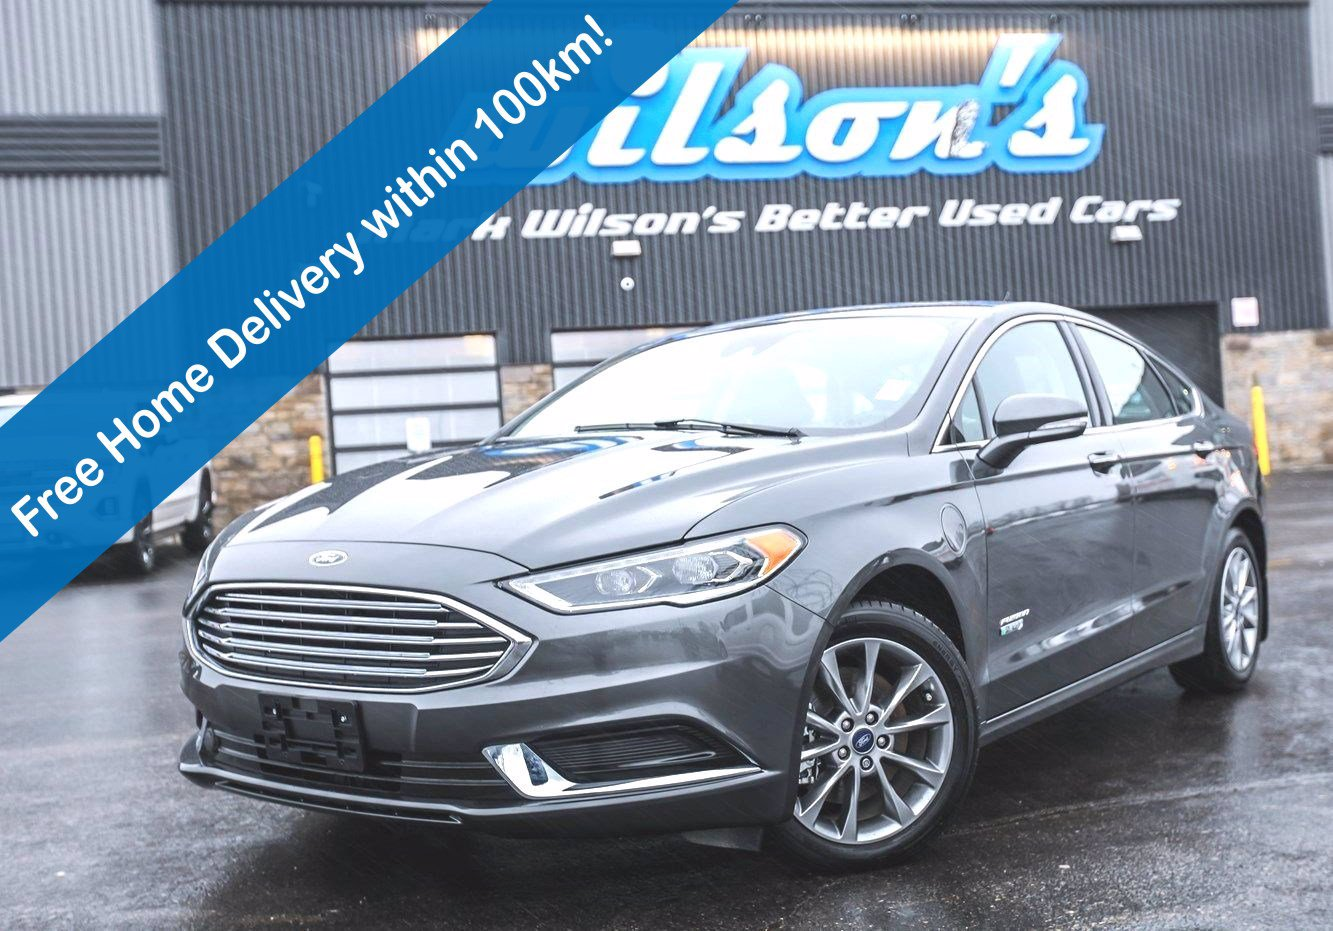 Certified Pre-Owned 2018 Ford Fusion Energi SE Luxury, Only 7000km! Leather, Navigation, Heated Steering + Seats, Remote Start and more!